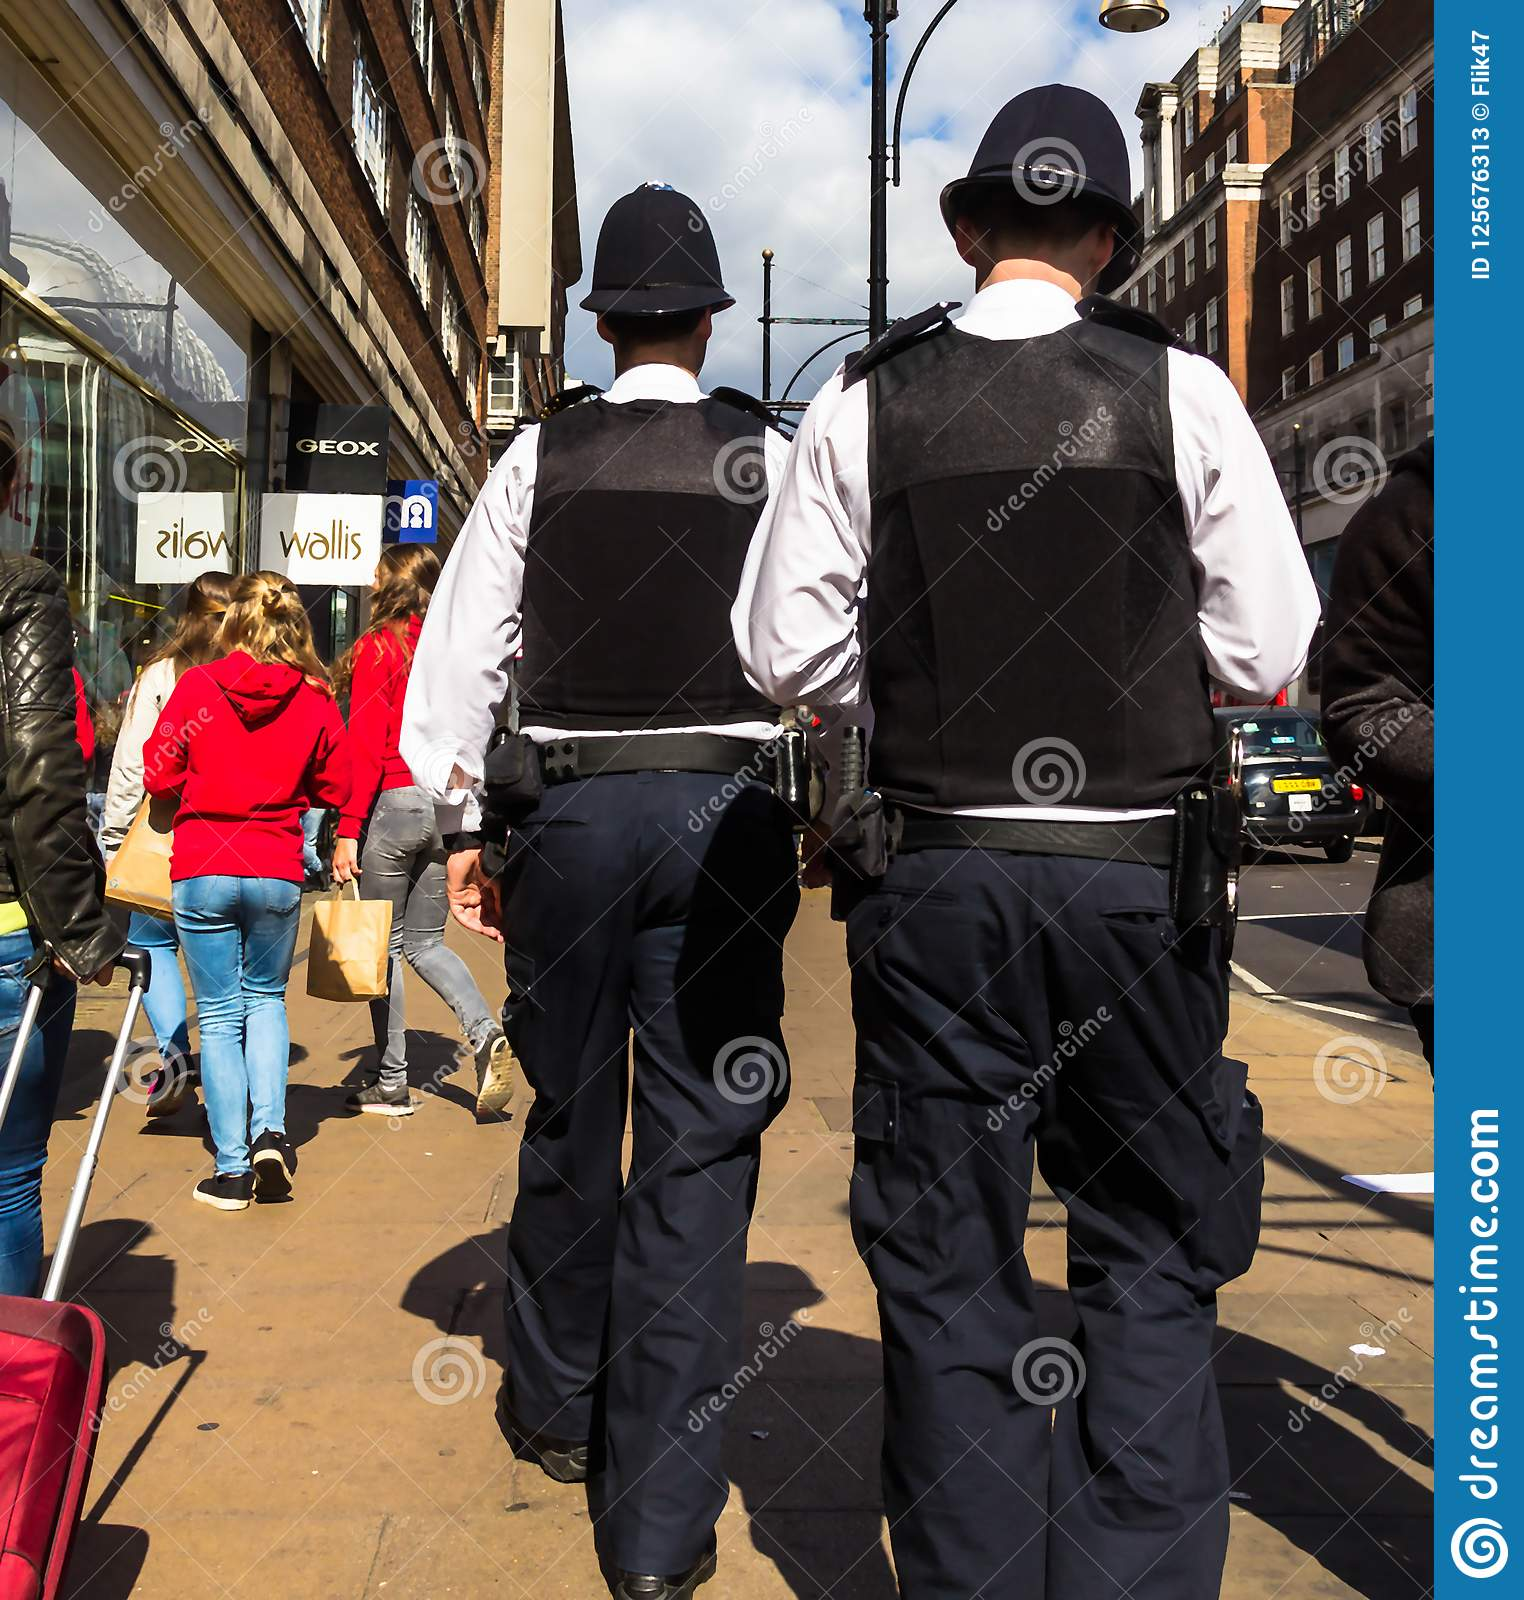 Oxford Street. Two unrecognizable police officers patrolling in the city.